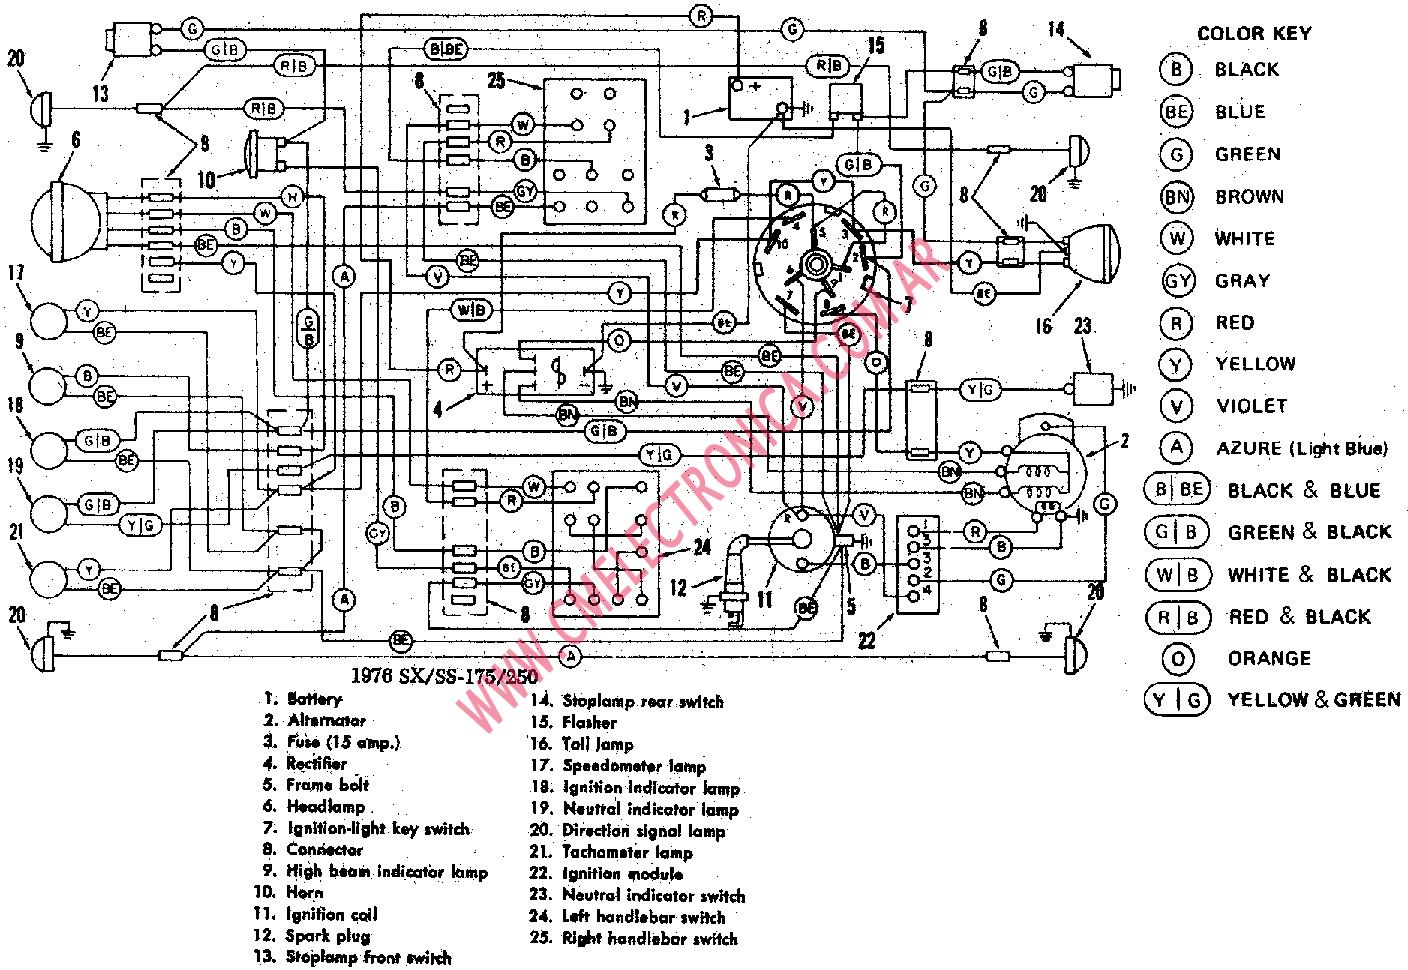 Polaris Ranger Crew Wiring Diagram Free Picture For Control Images Gallery Zr 500 Motor Engine Image User